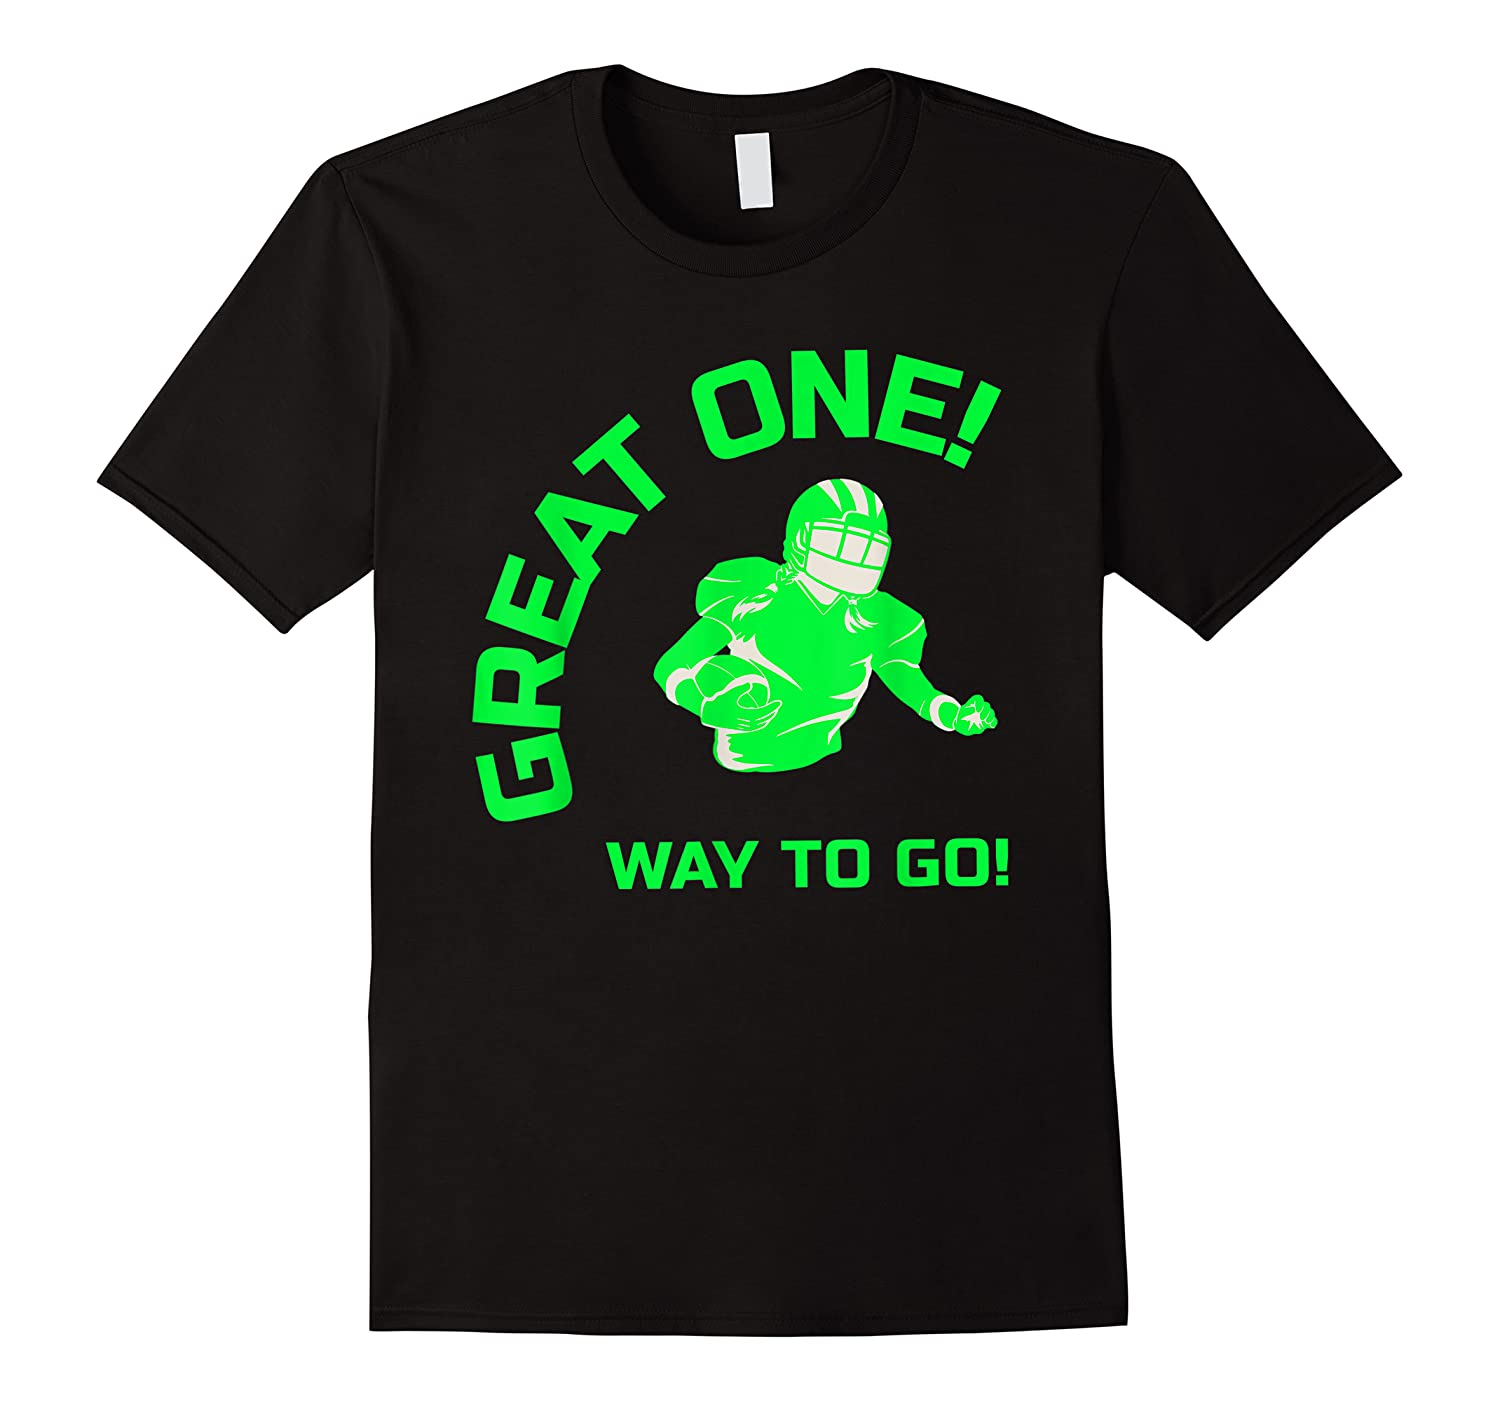 Great One! Way To Go! Football Tees T-shirt